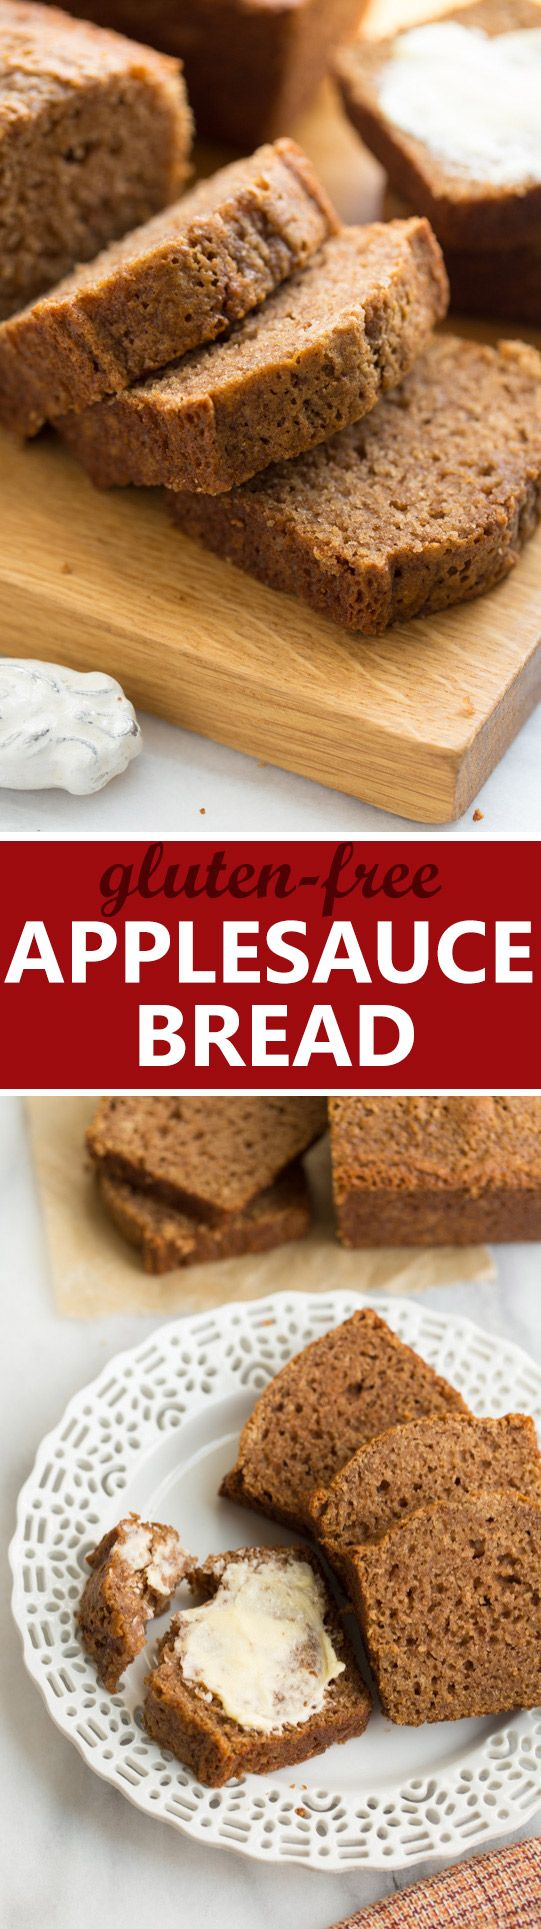 Gluten-Free Applesauce Bread! Cinnamon-spiced bread made with a wholesome gluten-free flour blend. {Dairy-Free}